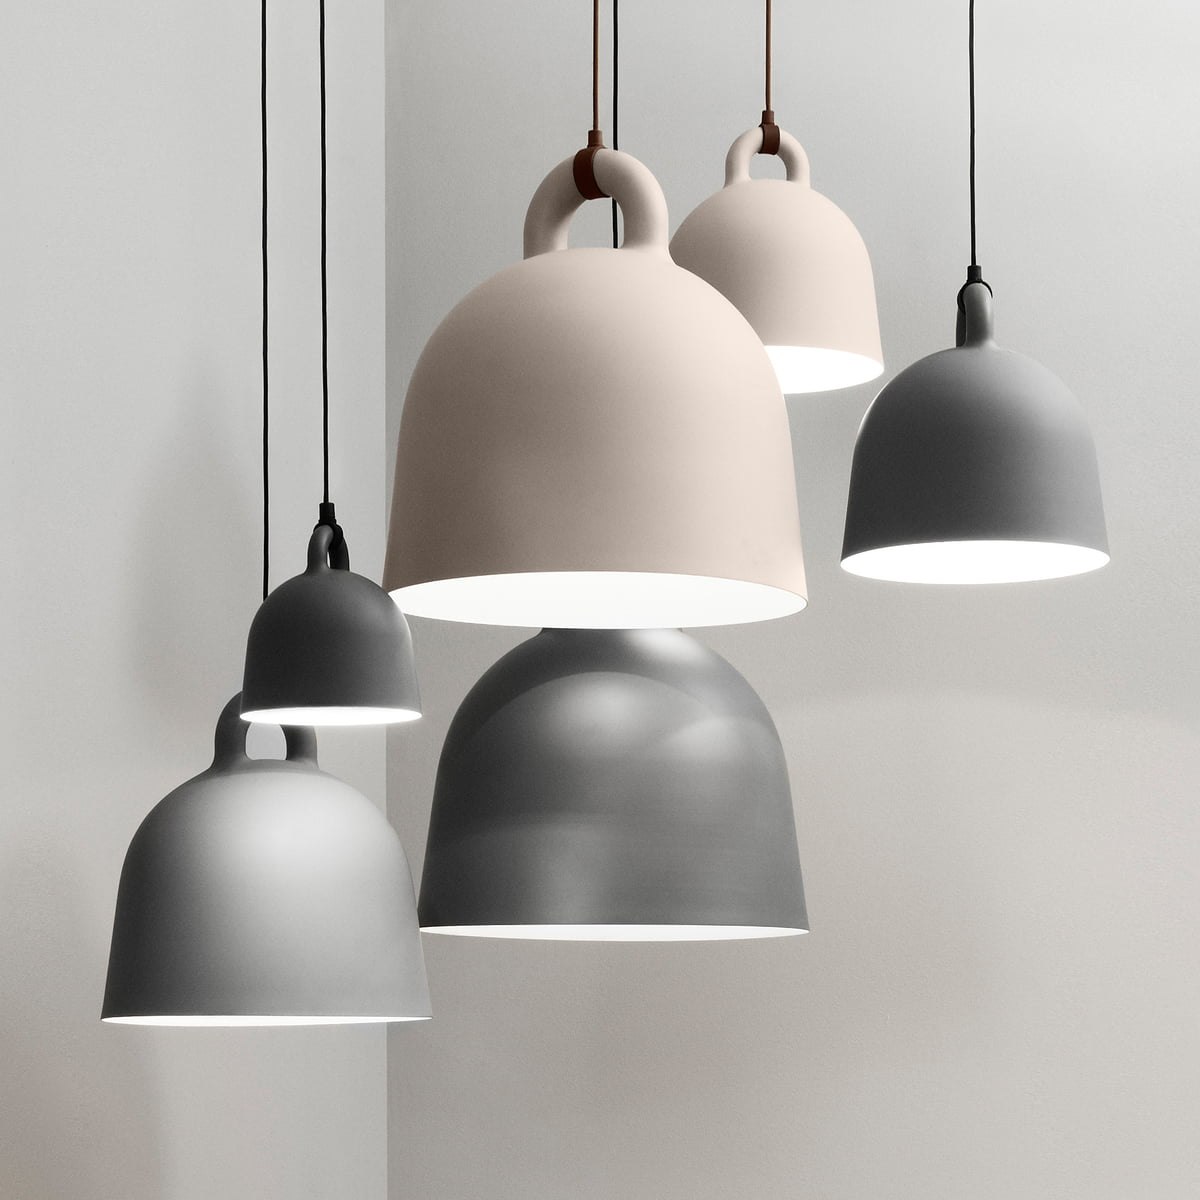 normann copenhagen bell pendant lamp. Black Bedroom Furniture Sets. Home Design Ideas